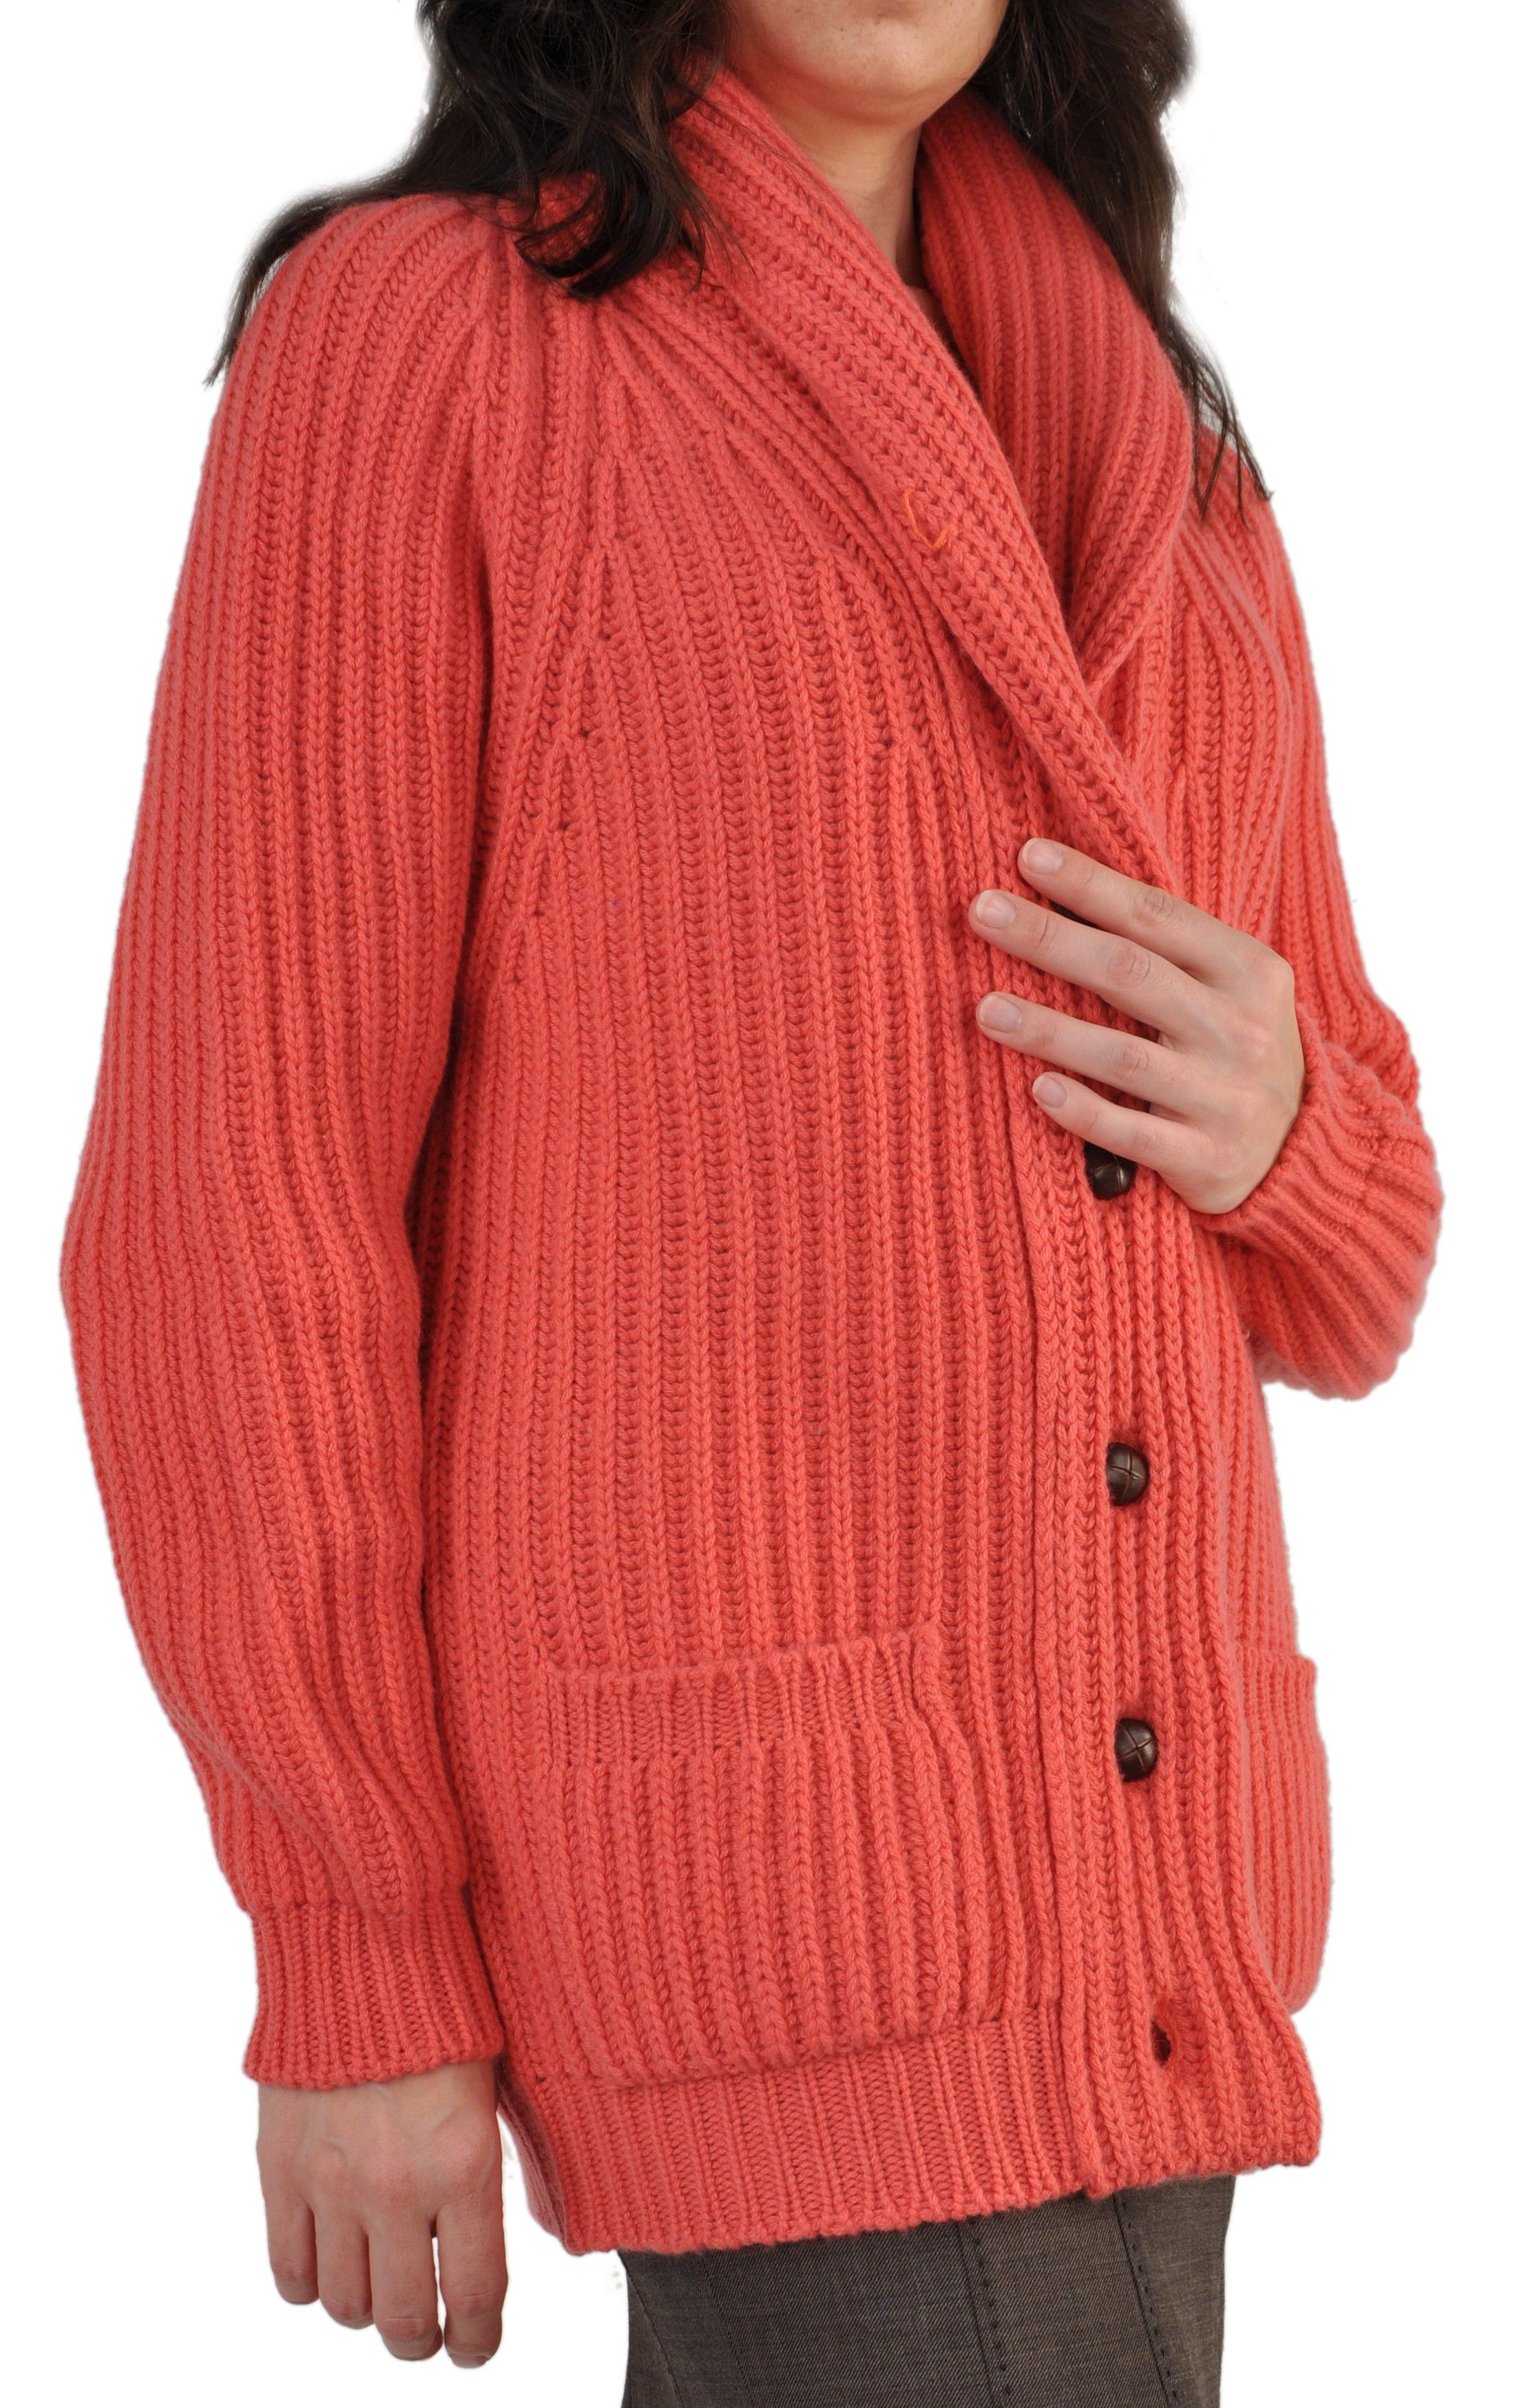 Custom Made Women's 12-Ply Cashmere Cardigan Sweater